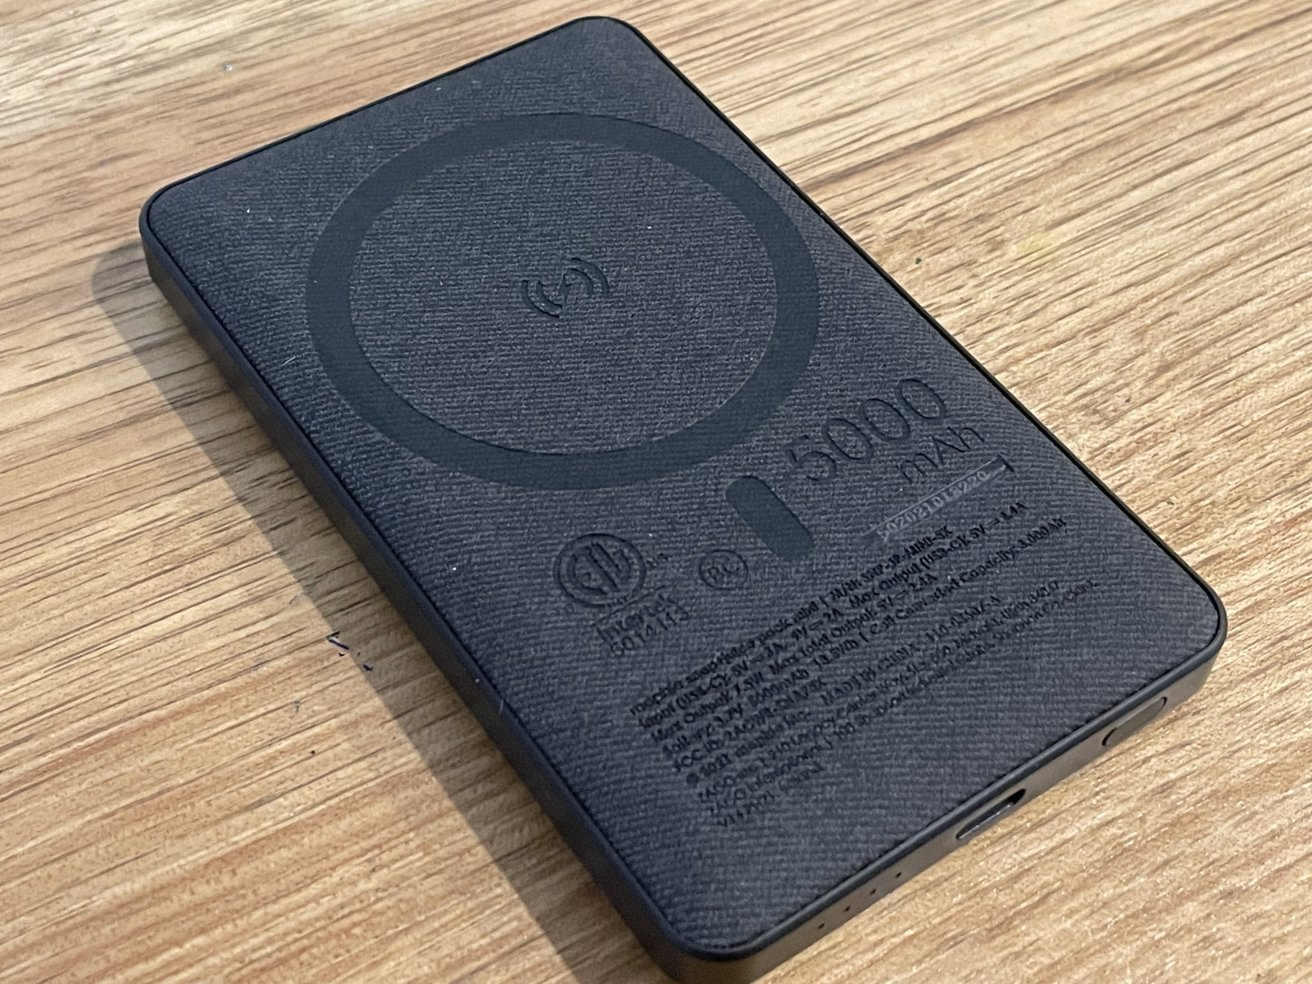 It holds a hefty 5,000mAh of charge for your iPhone, which it can deliver wirelessly.